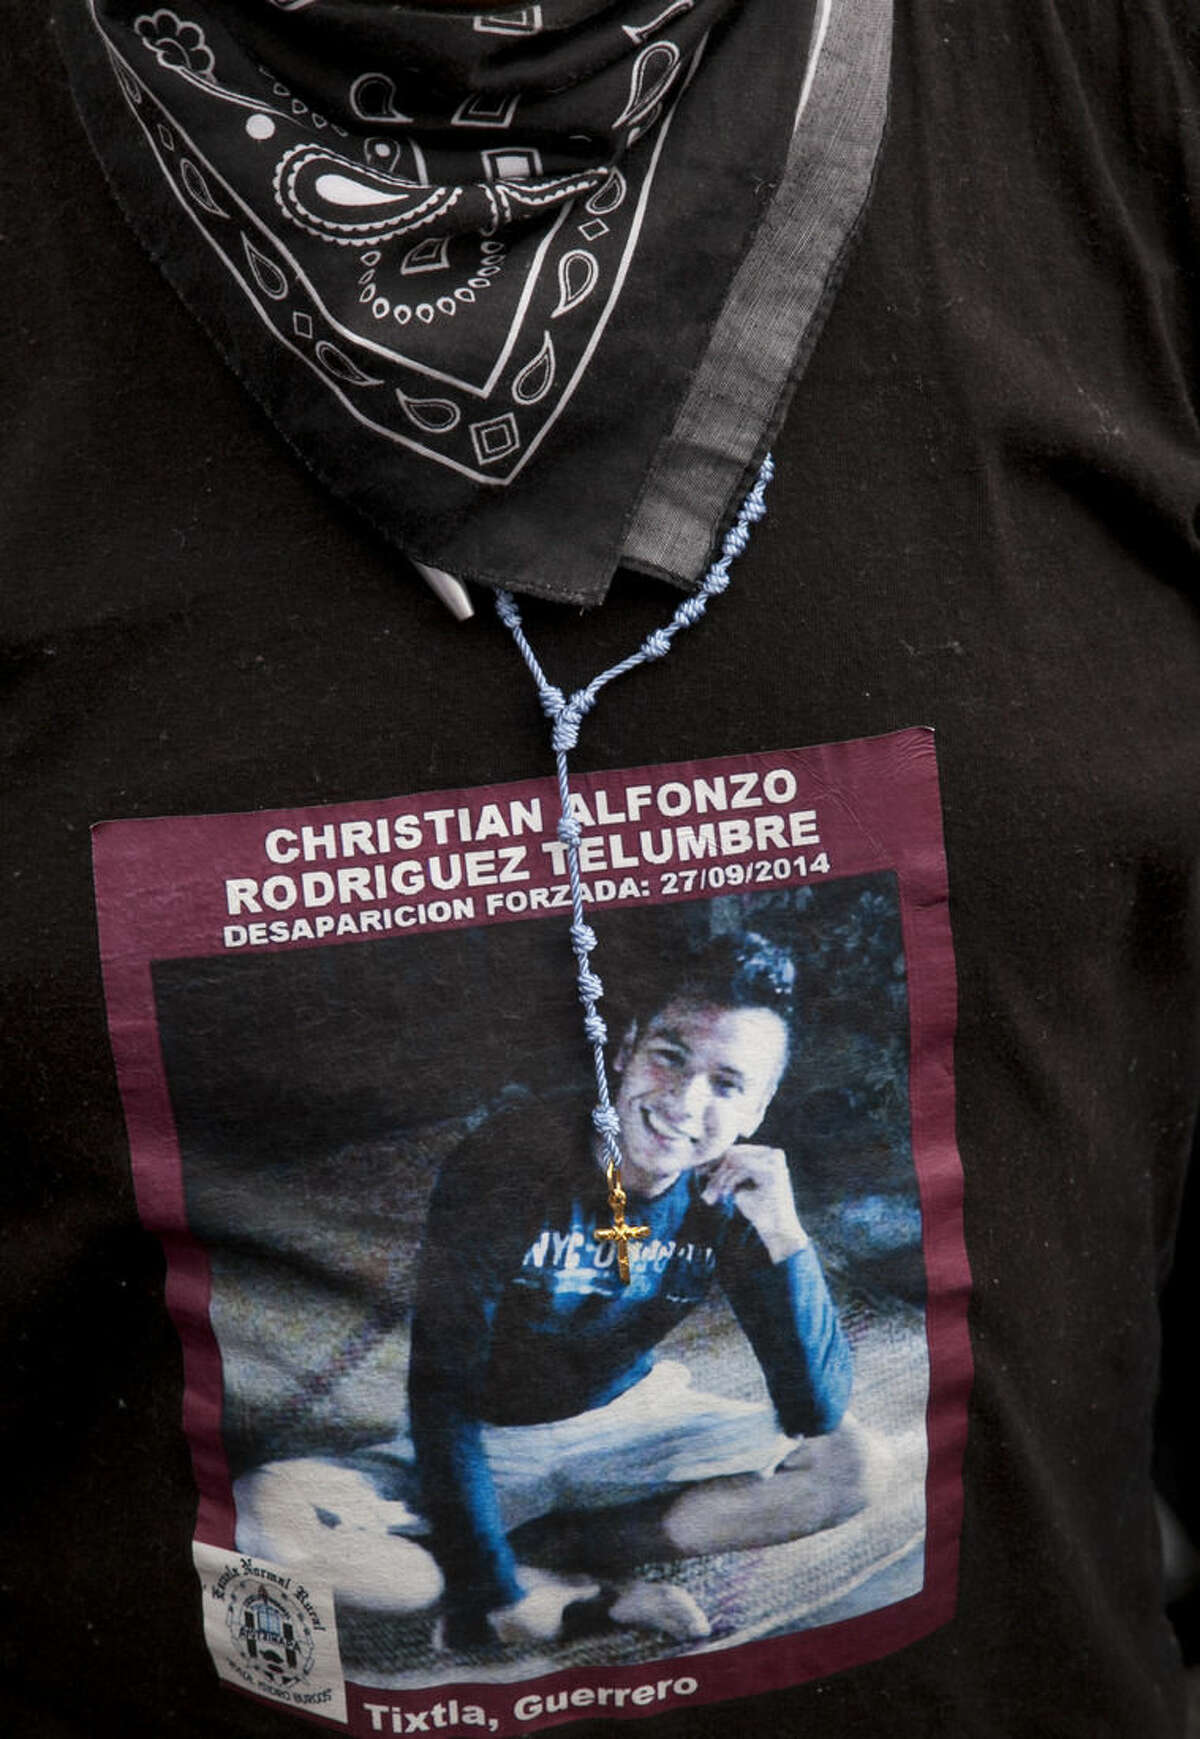 Clemente Rodriguez wears a photo of his missing son Christian Rodriguez Telumbre at the end of a 43 hour protest fast in the Zocalo, Mexico City's main square, Friday, Sept. 25, 2015, the day before the one year anniversary of the disappearance of 43 rural college students in Guerrero state. According to an independent group of experts, their disappearances, and the killings of six others on Sept. 26, 2014, were the result of a long, coordinated attack against students from the Raul Isidro Burgos Rural Normal School of Ayotzinapa. (AP Photo/Marco Ugarte)